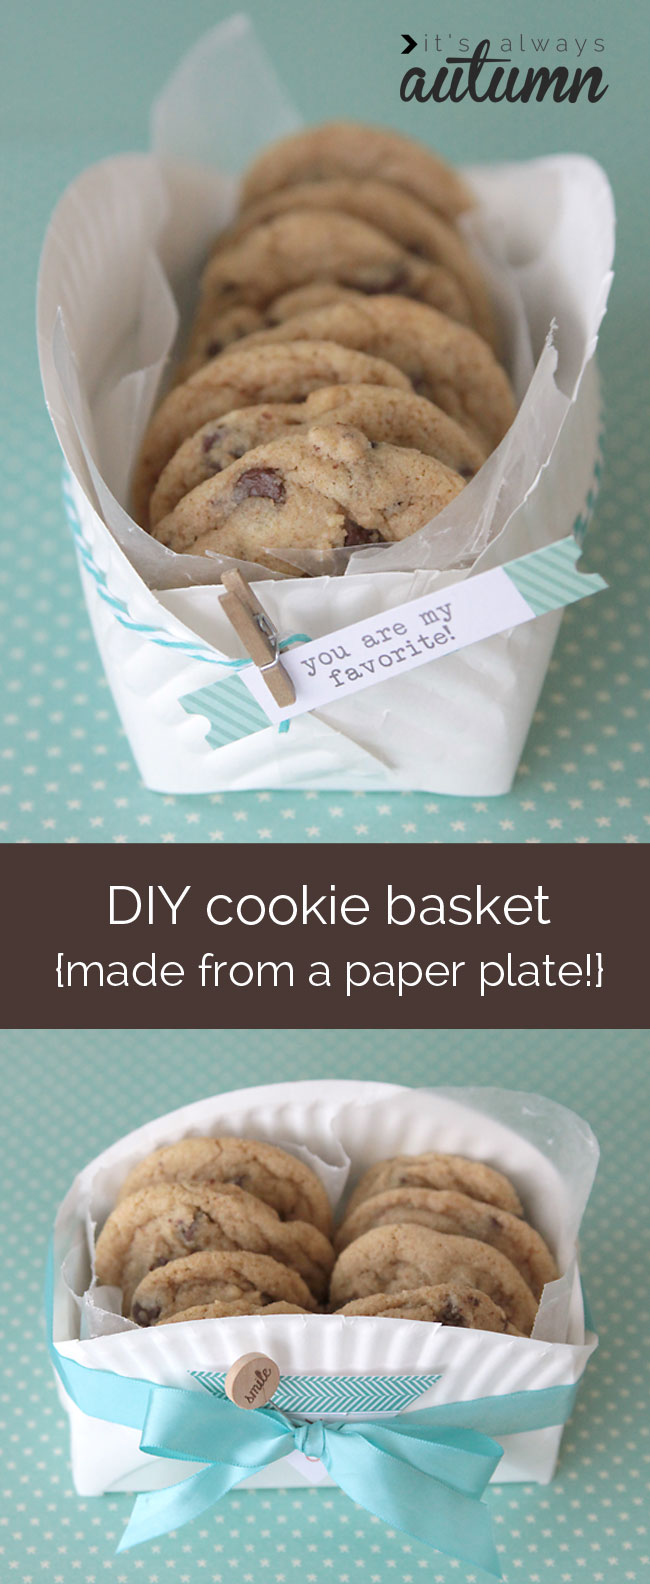 DIY cookie basket made from folded paper plate